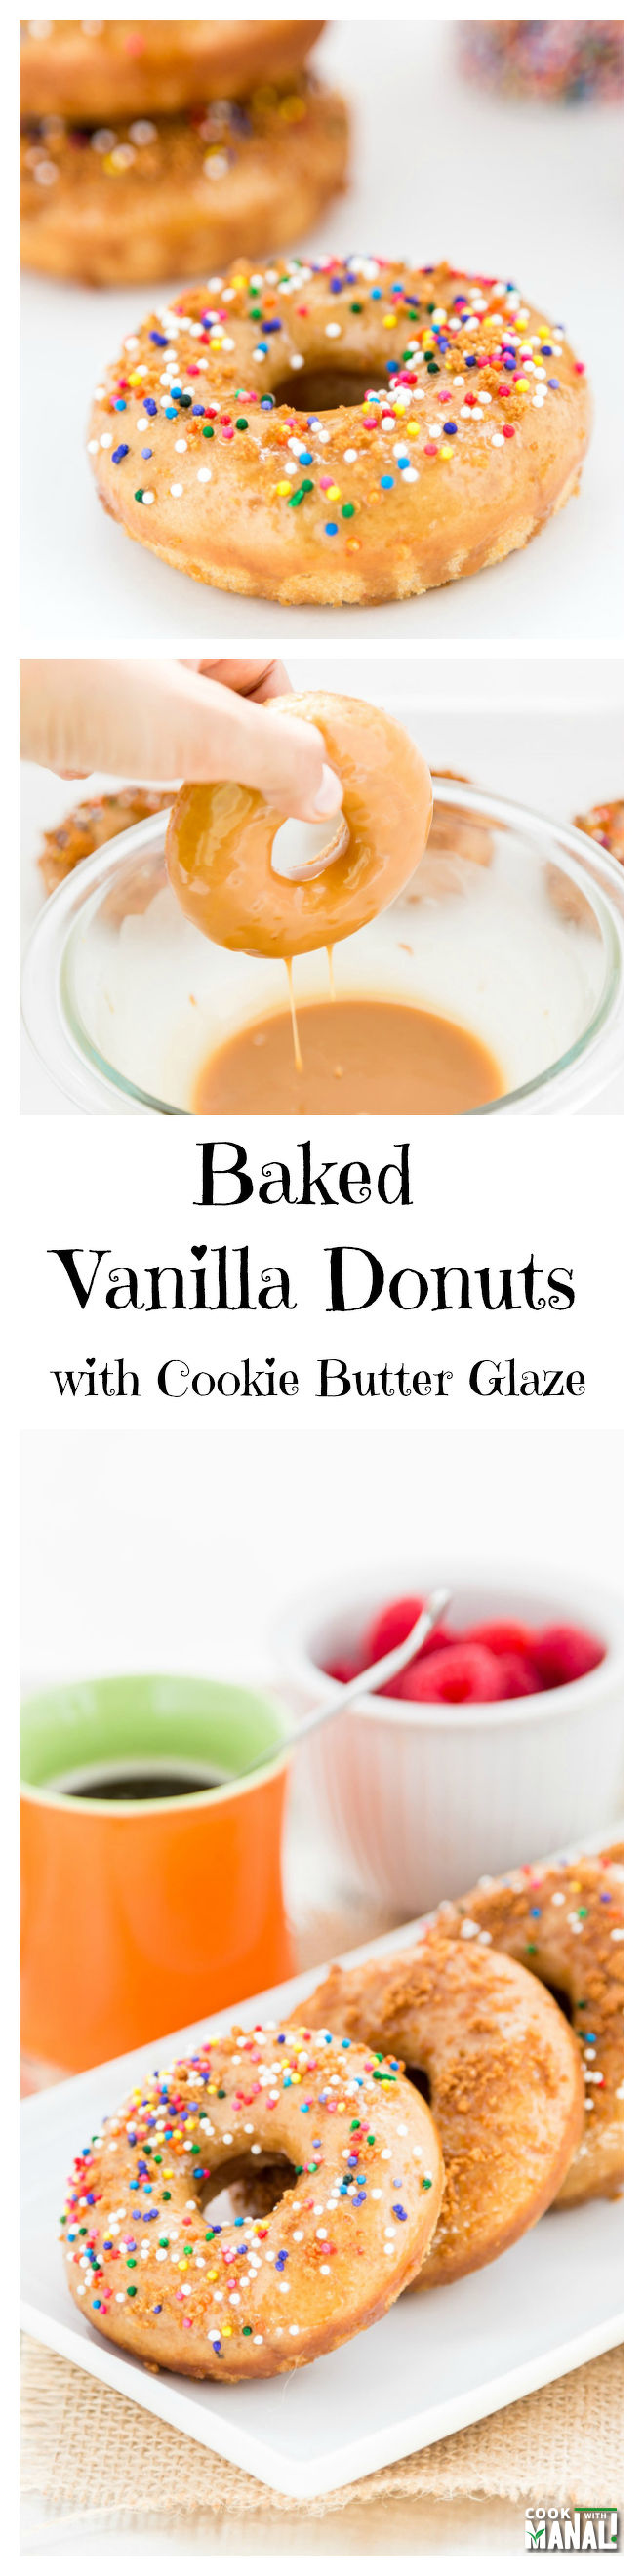 Vanilla-Donuts-with-Cookie-Butter-Glaze-Collage